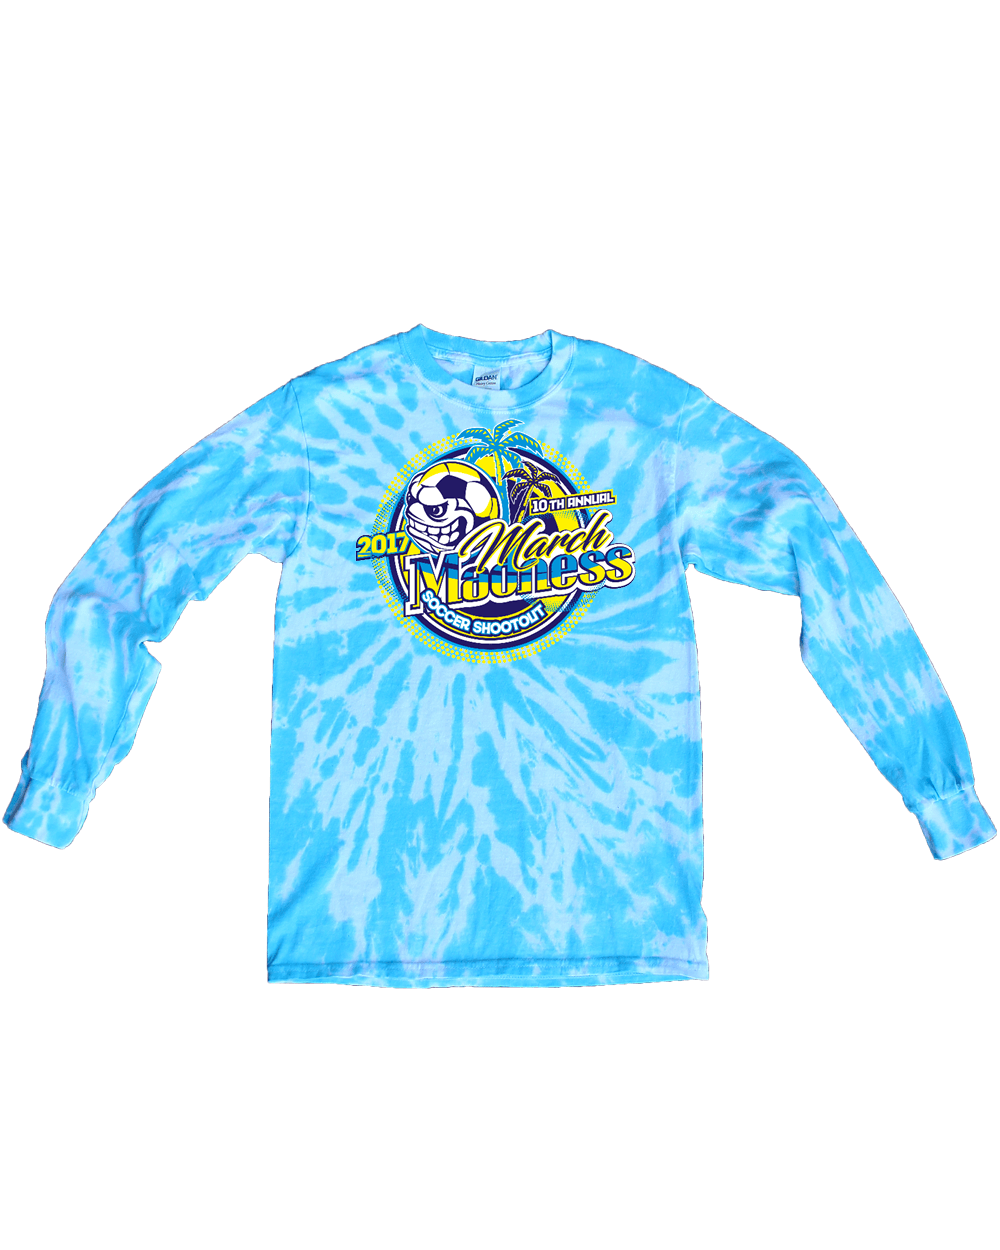 Blue Tie Dye Long Sleeve Shirt March Madness Simax Sports